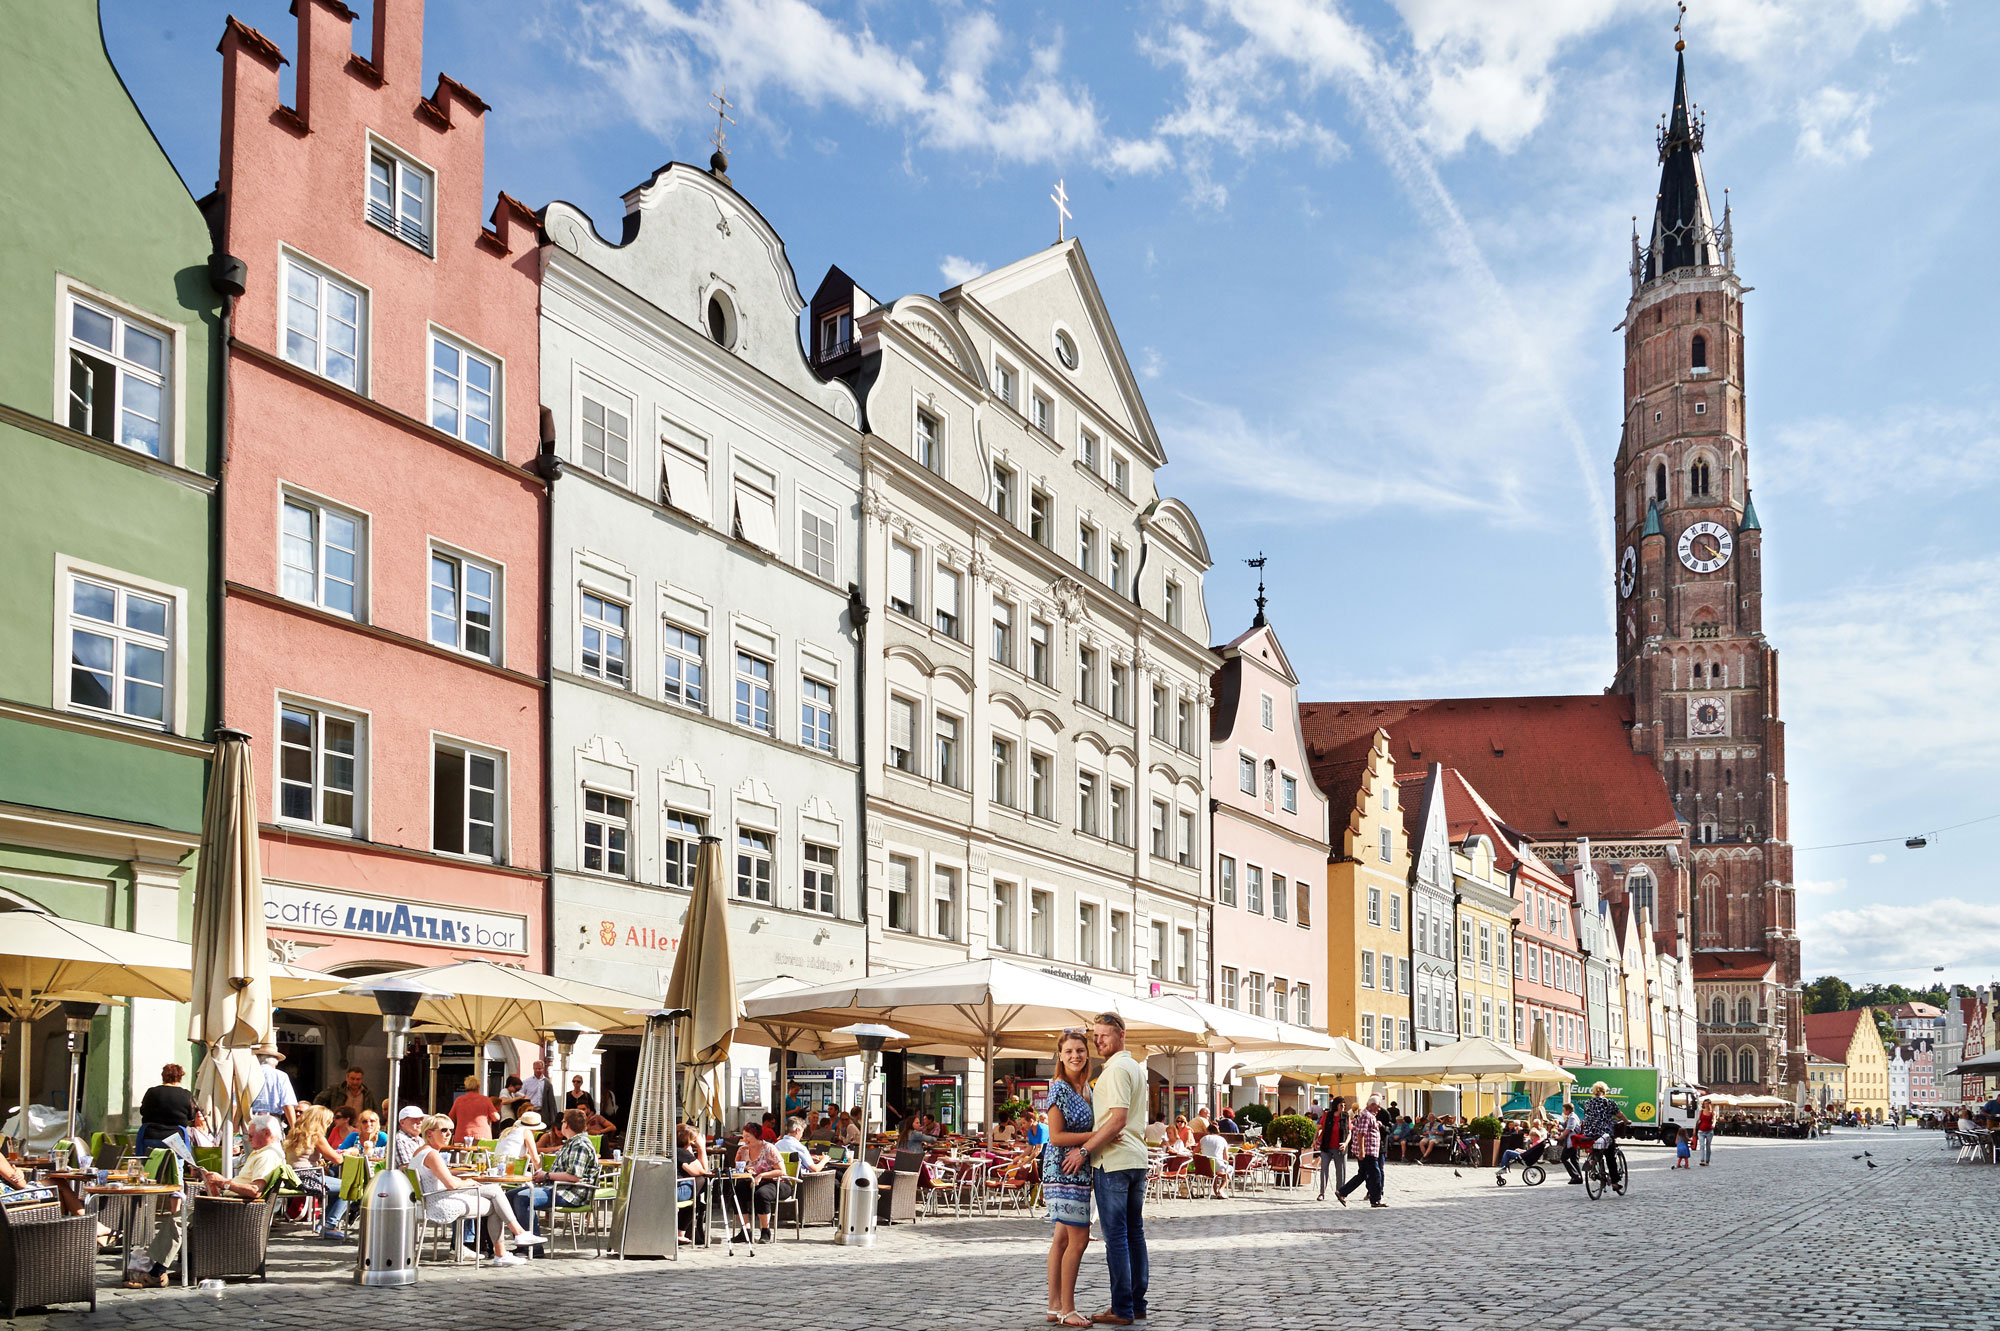 The ducal town of Landshut emphasises its Mediterranean character with lots of fl air and charm, priding itself on being both lively and romantic for shopping and culture lovers alike.